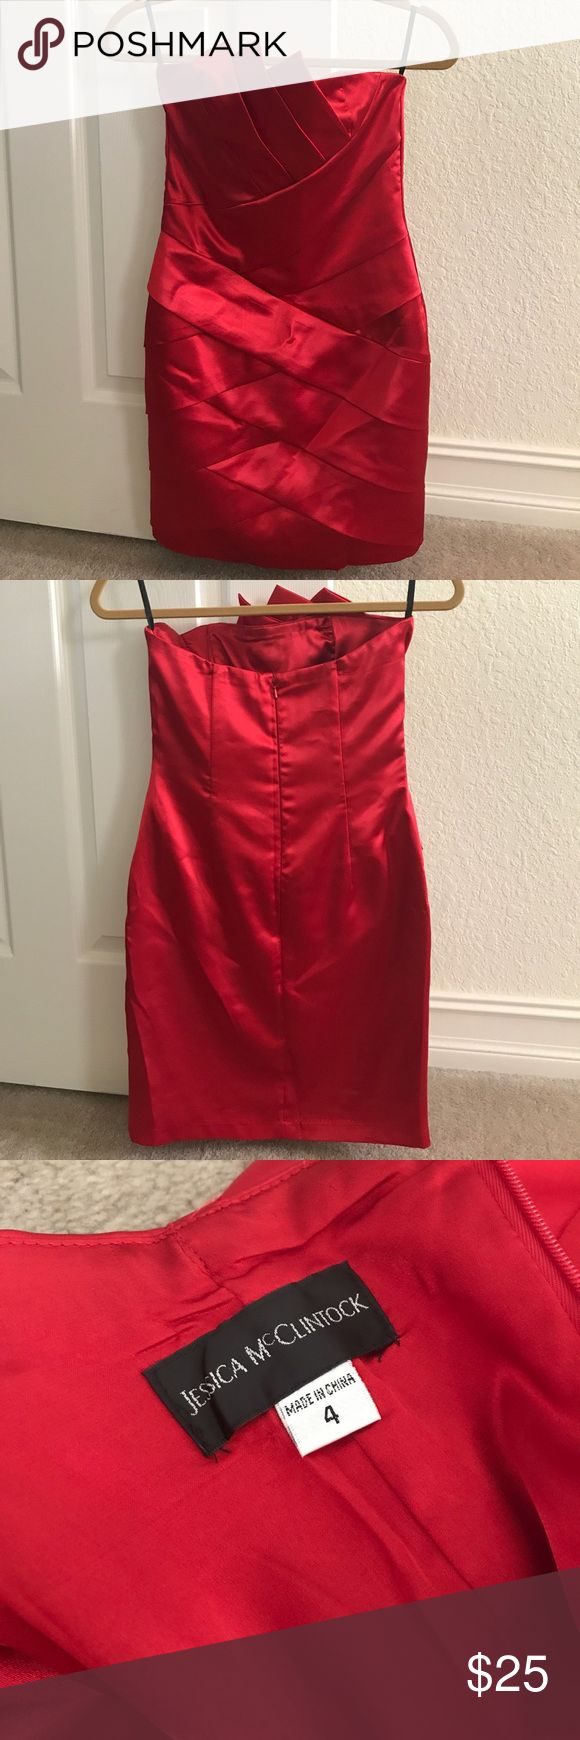 Jessica McClintock red dress Jessica McClintock red dress size 4- perfect condition -kept in a smoke free home Jessica McClintock Dresses Strapless